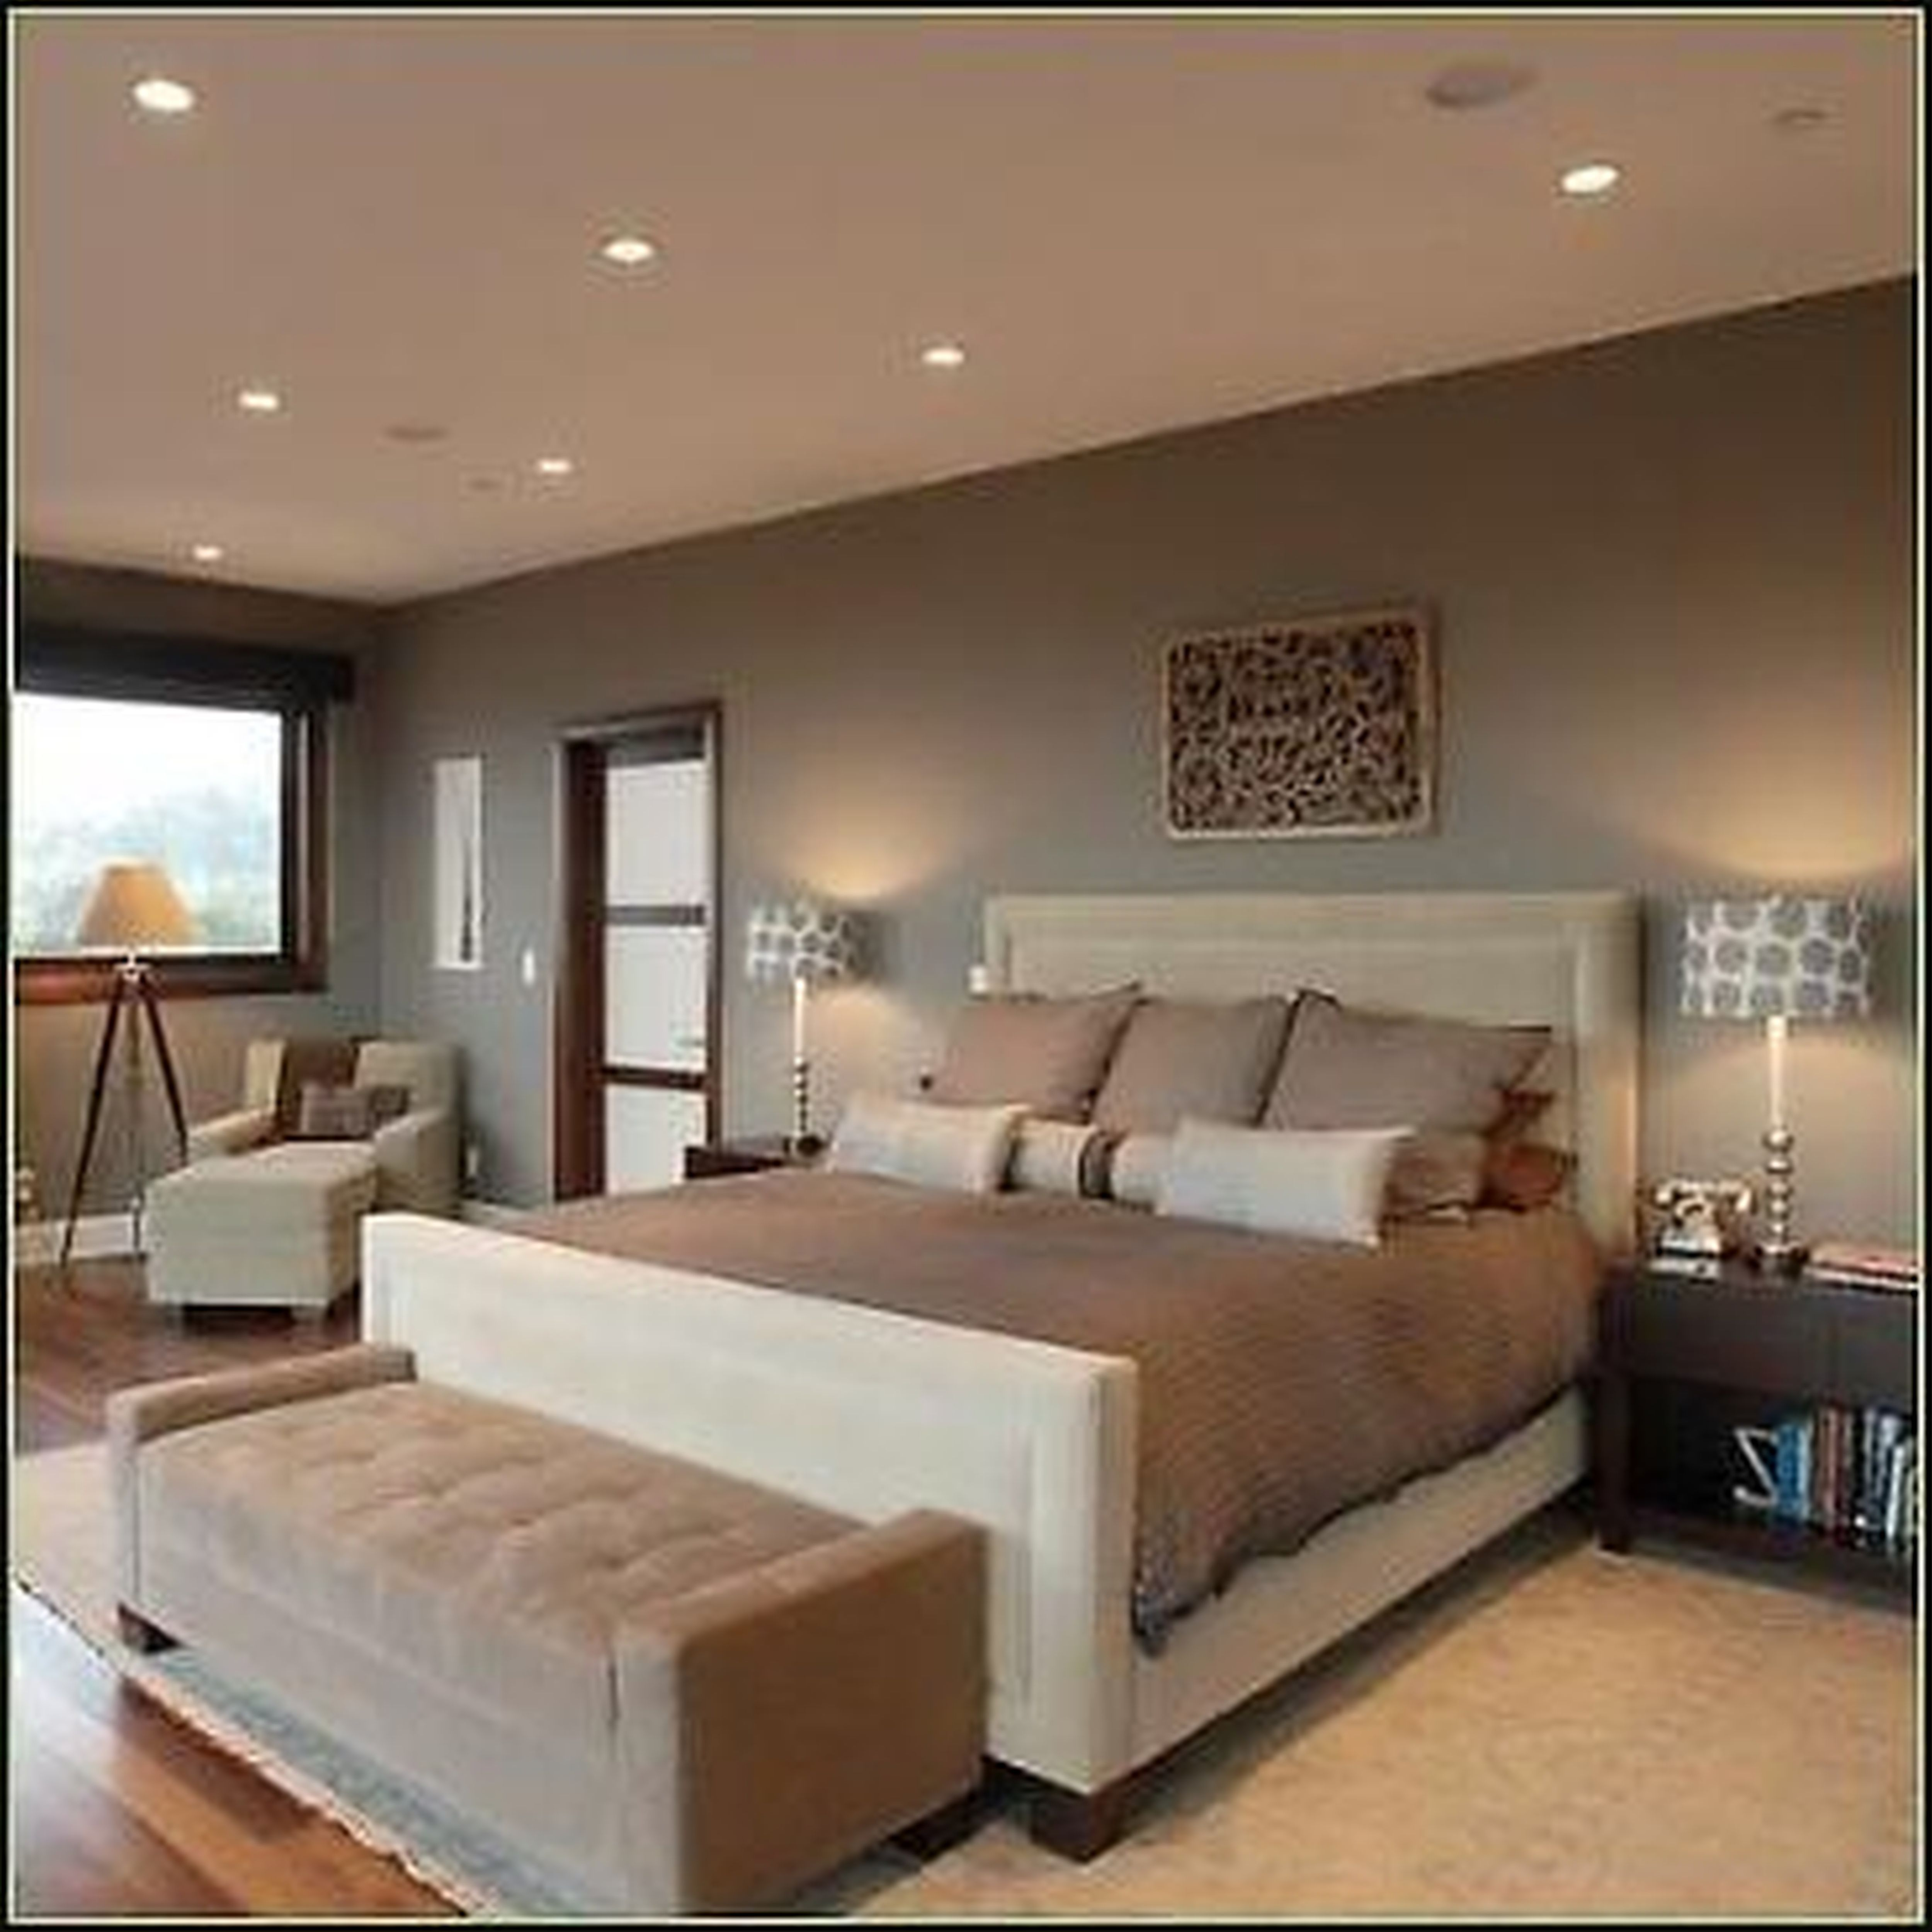 Warm Bedroom Color Schemes: 44 Amazing Living Room Paint Ideas By Brown Furniture